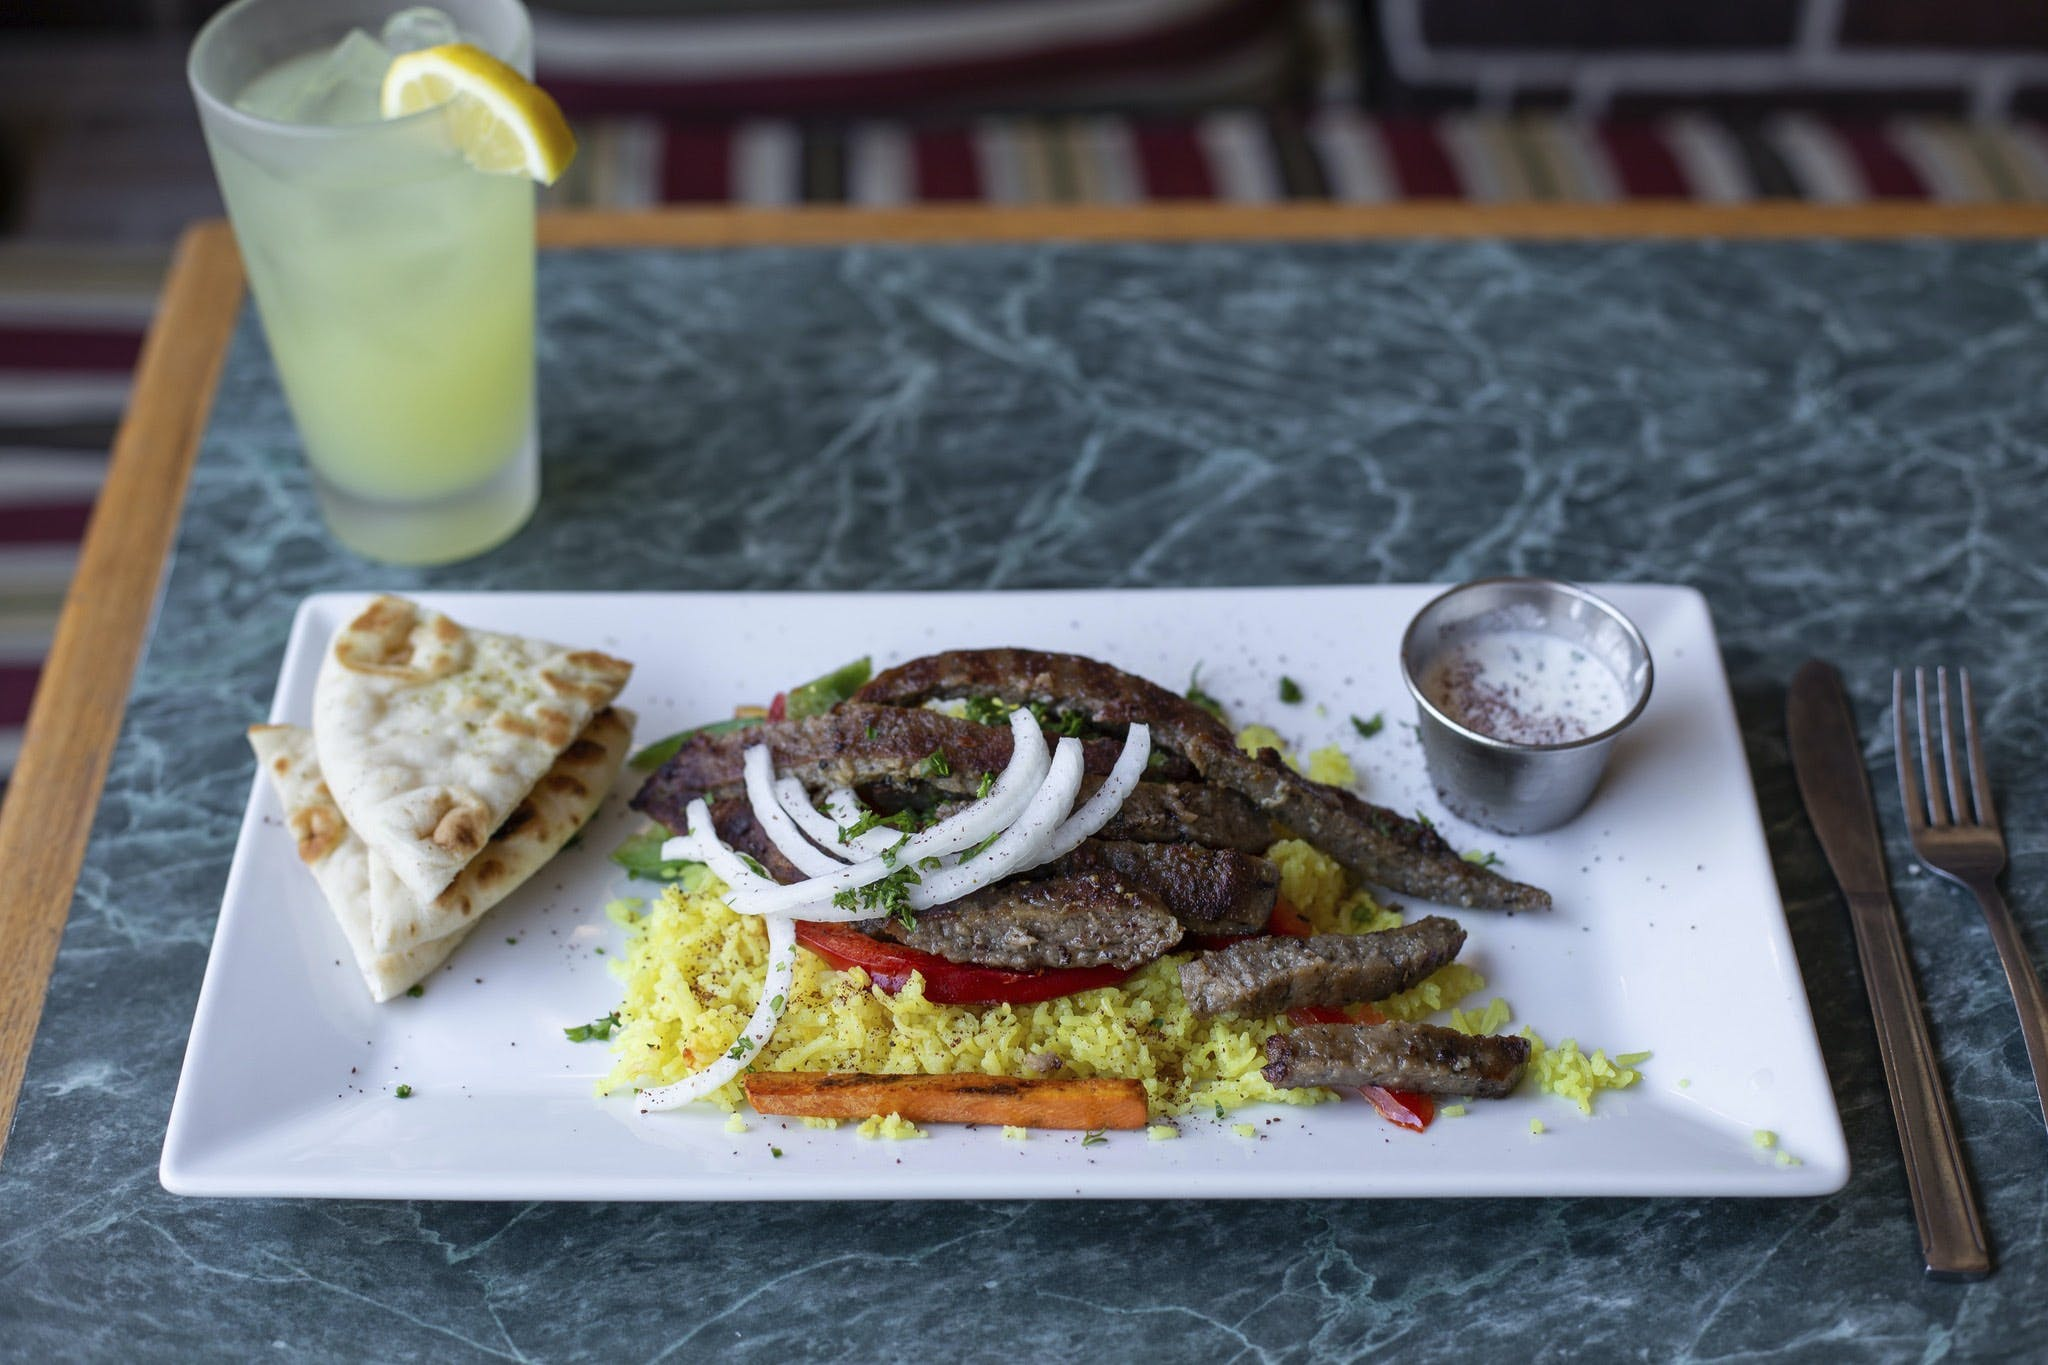 Aladdin Cafe in Lawrence - Highlight